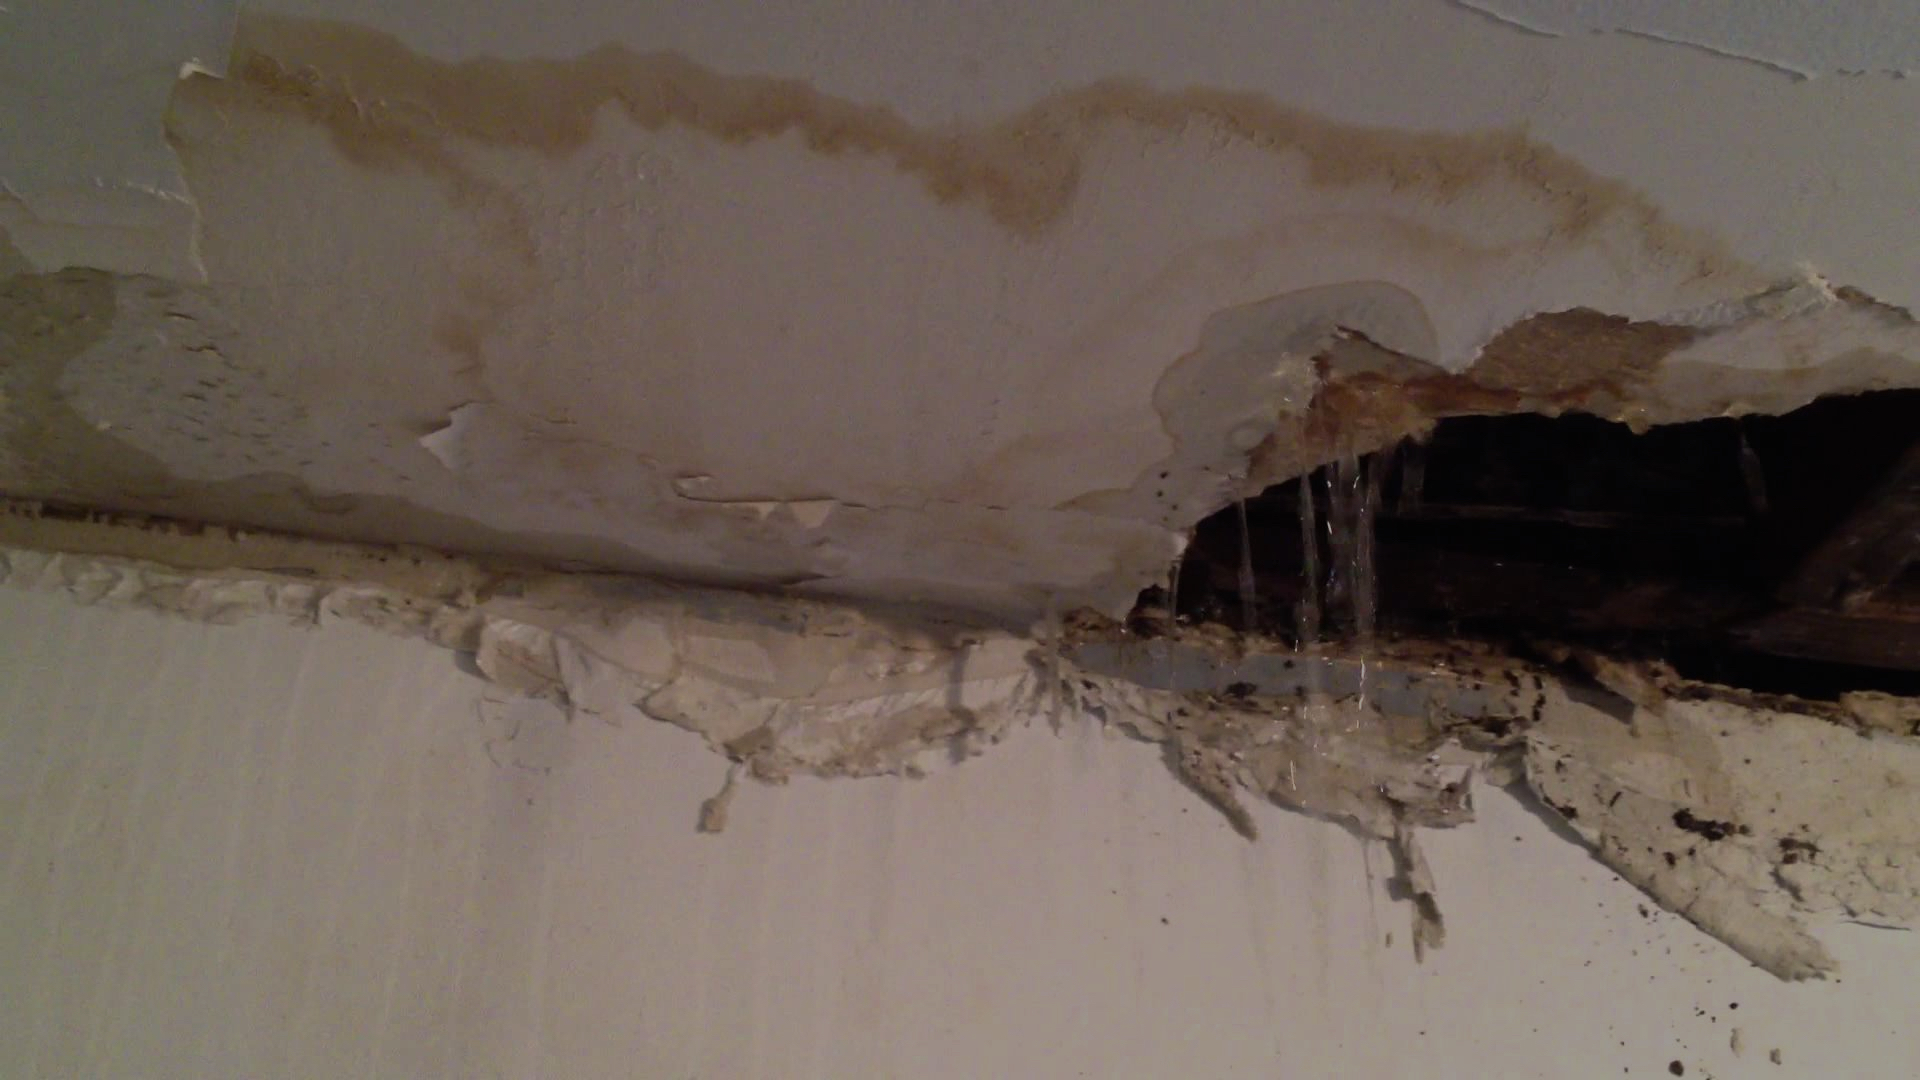 Leak-In-Ceiling-Under-Bathroom Bathroom Ceiling Leak. - Youtube